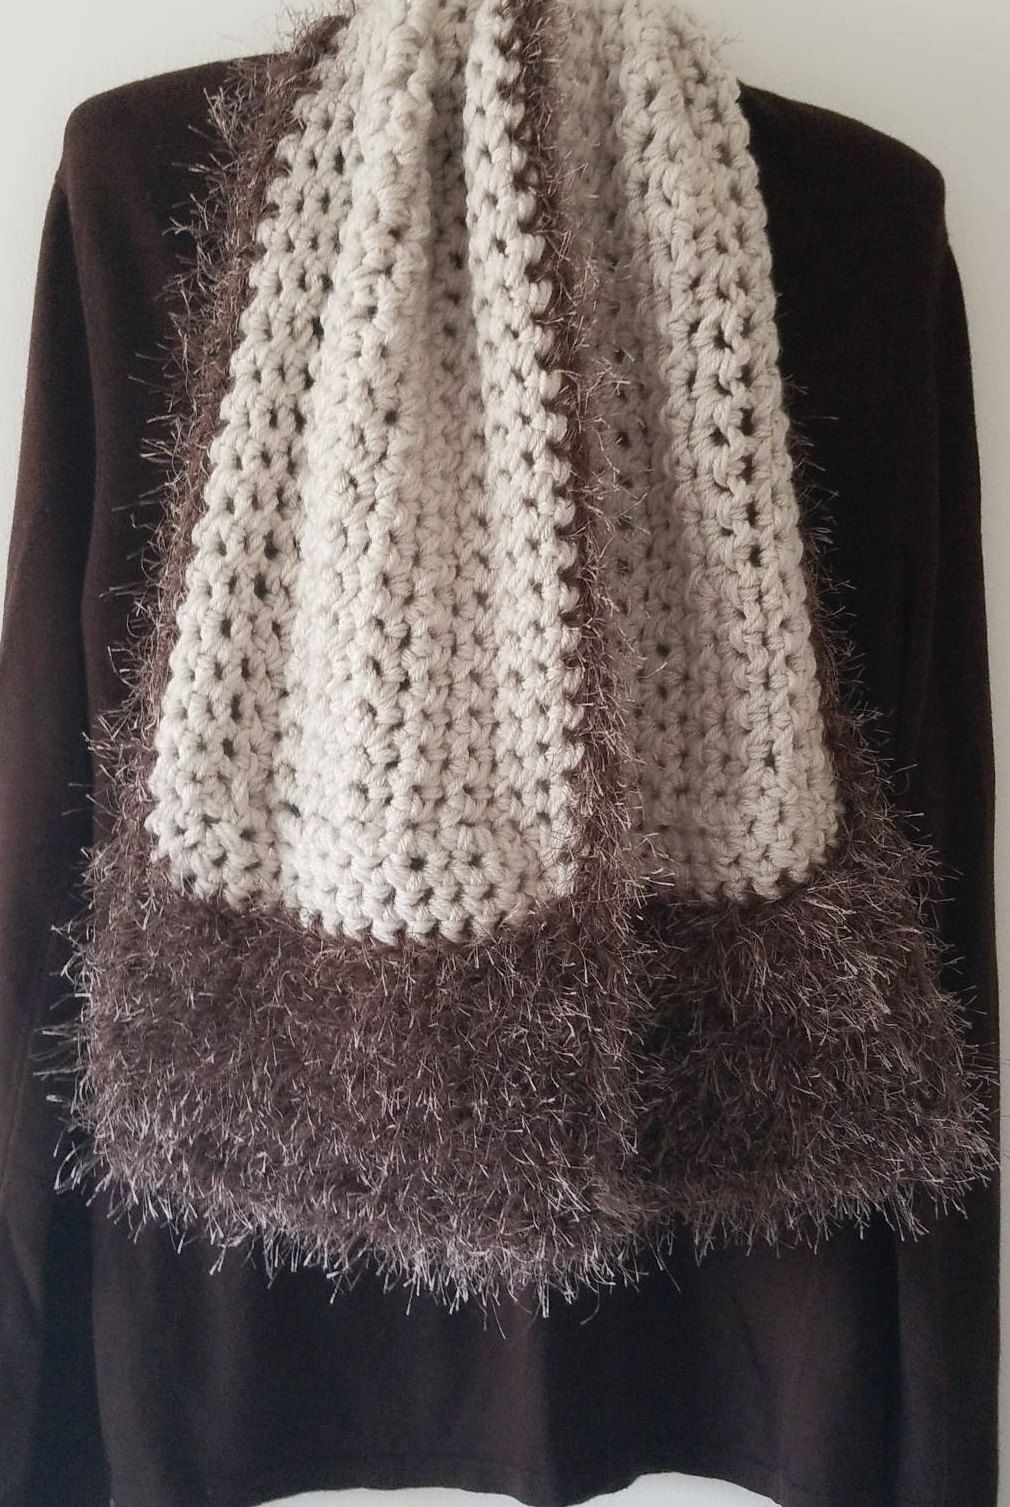 8c5831a9531 Beautiful Fashionable Fall Scarf Shaw Fuzzy Faux Fur Brown Cream Beige  Trendy Feathery Soft Crochet Handmade